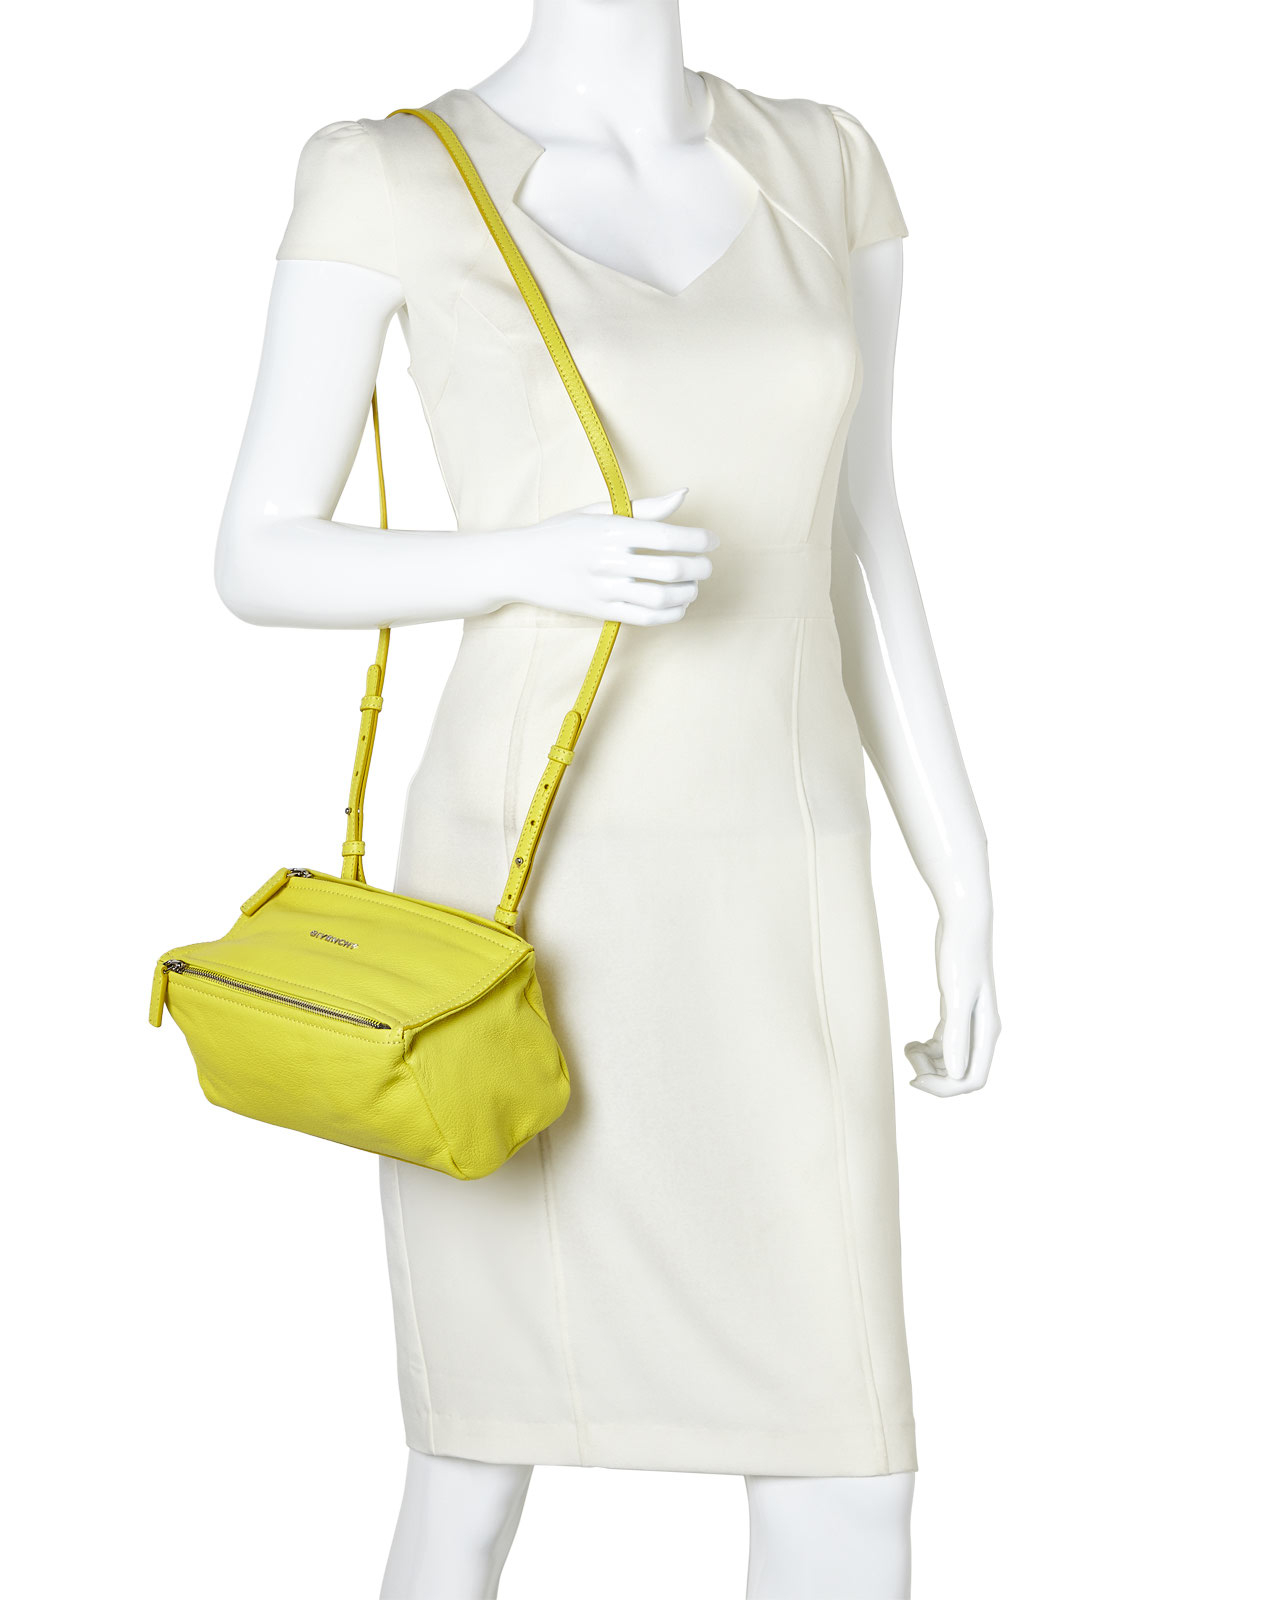 cb0aa002ad5 Lyst - Givenchy Yellow Pandora Mini Shoulder Bag in Yellow